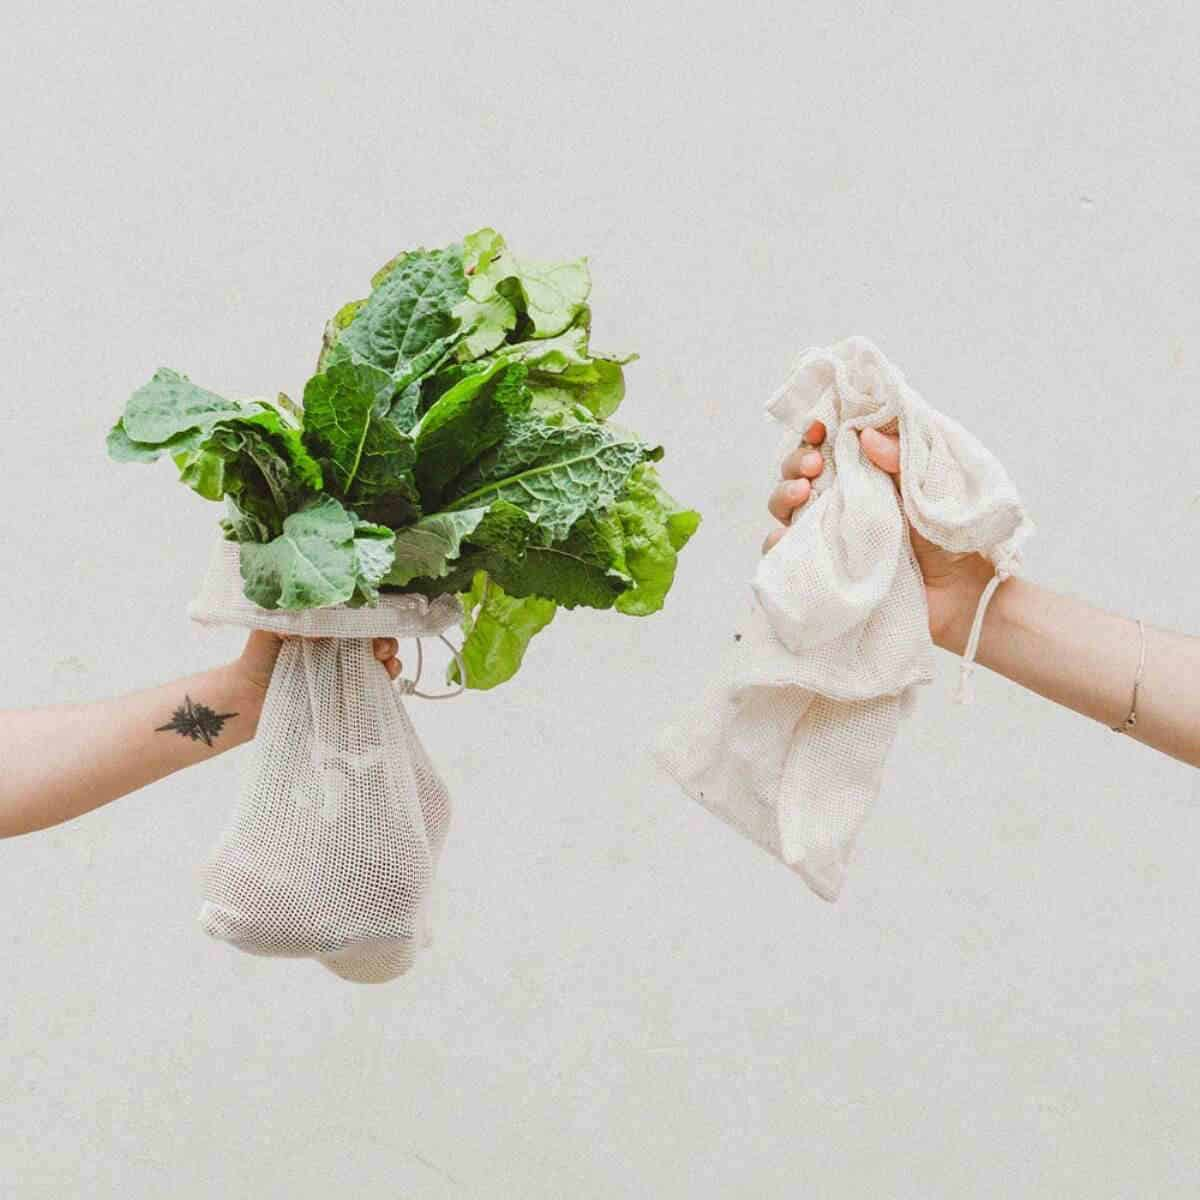 Best Zero Waste & Bulk Online Stores For All Your Package Free Shopping Needs Image by The Wally Shop #zerowaste #onlinestores